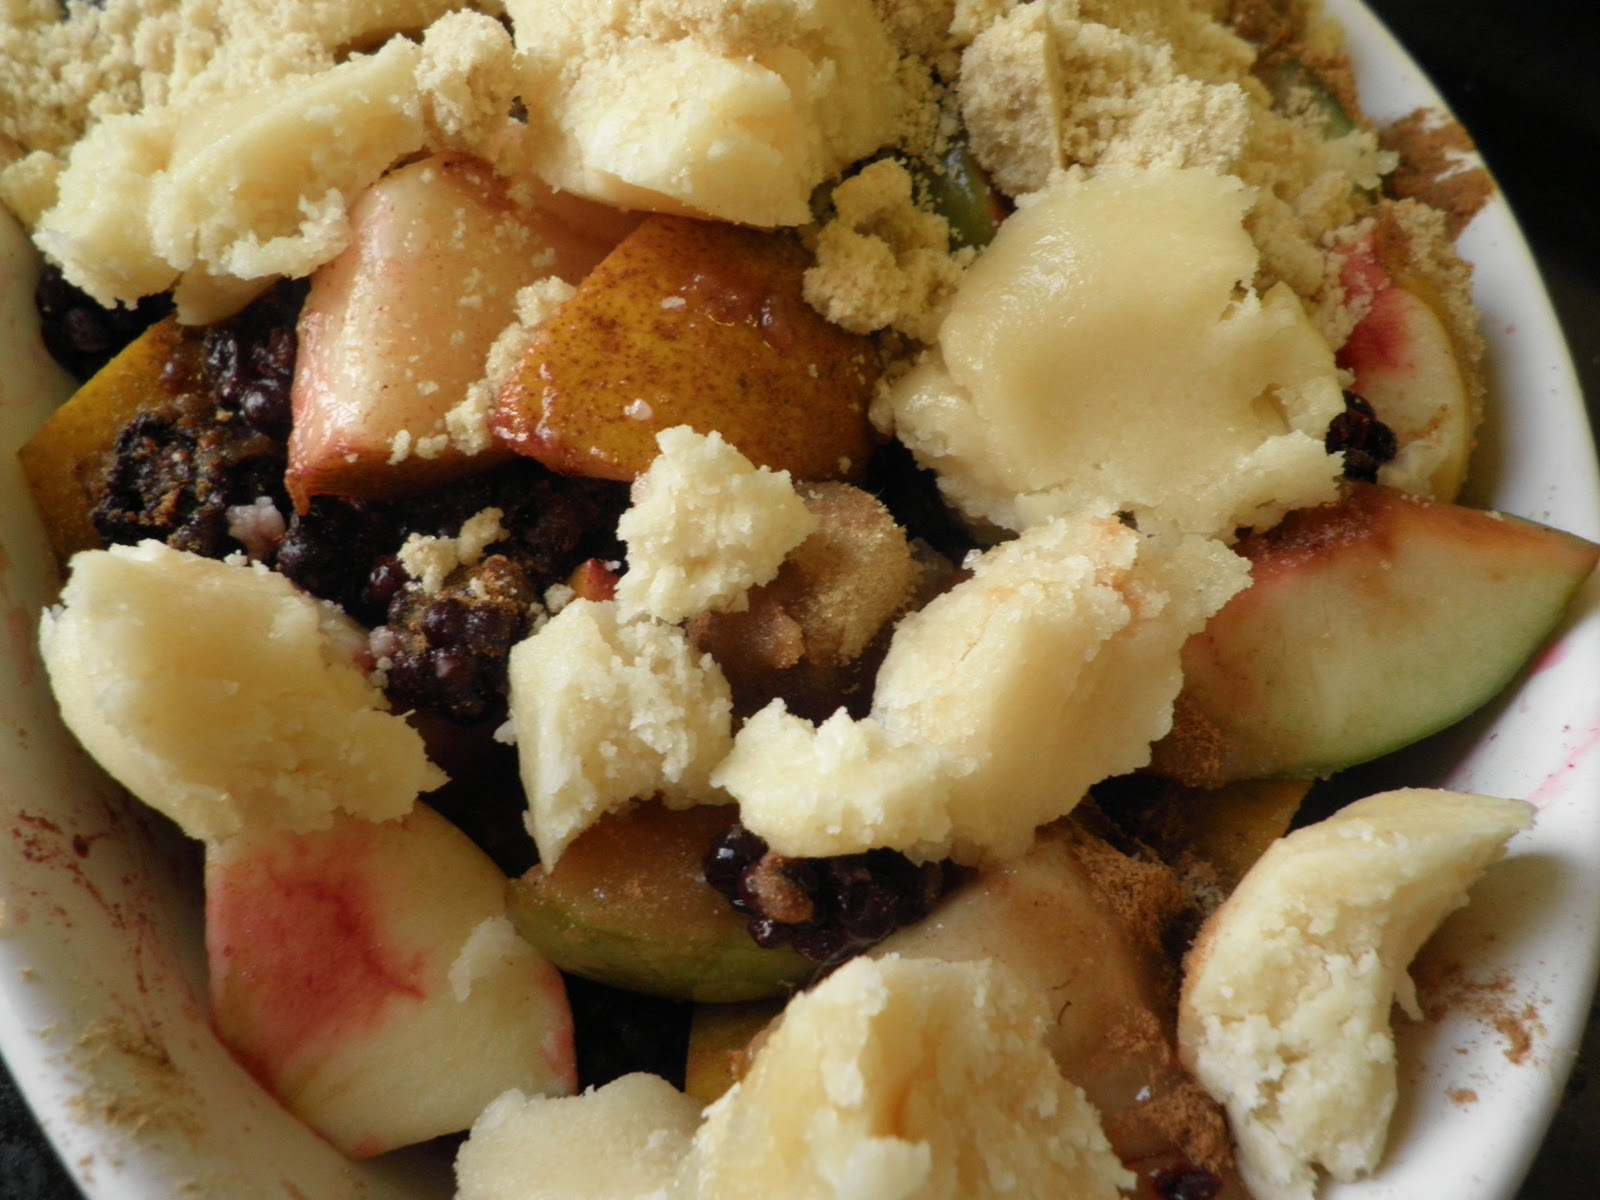 ...With Love and Cake: Autumn Fruit and Marzipan Crumble and a Few Mistakes